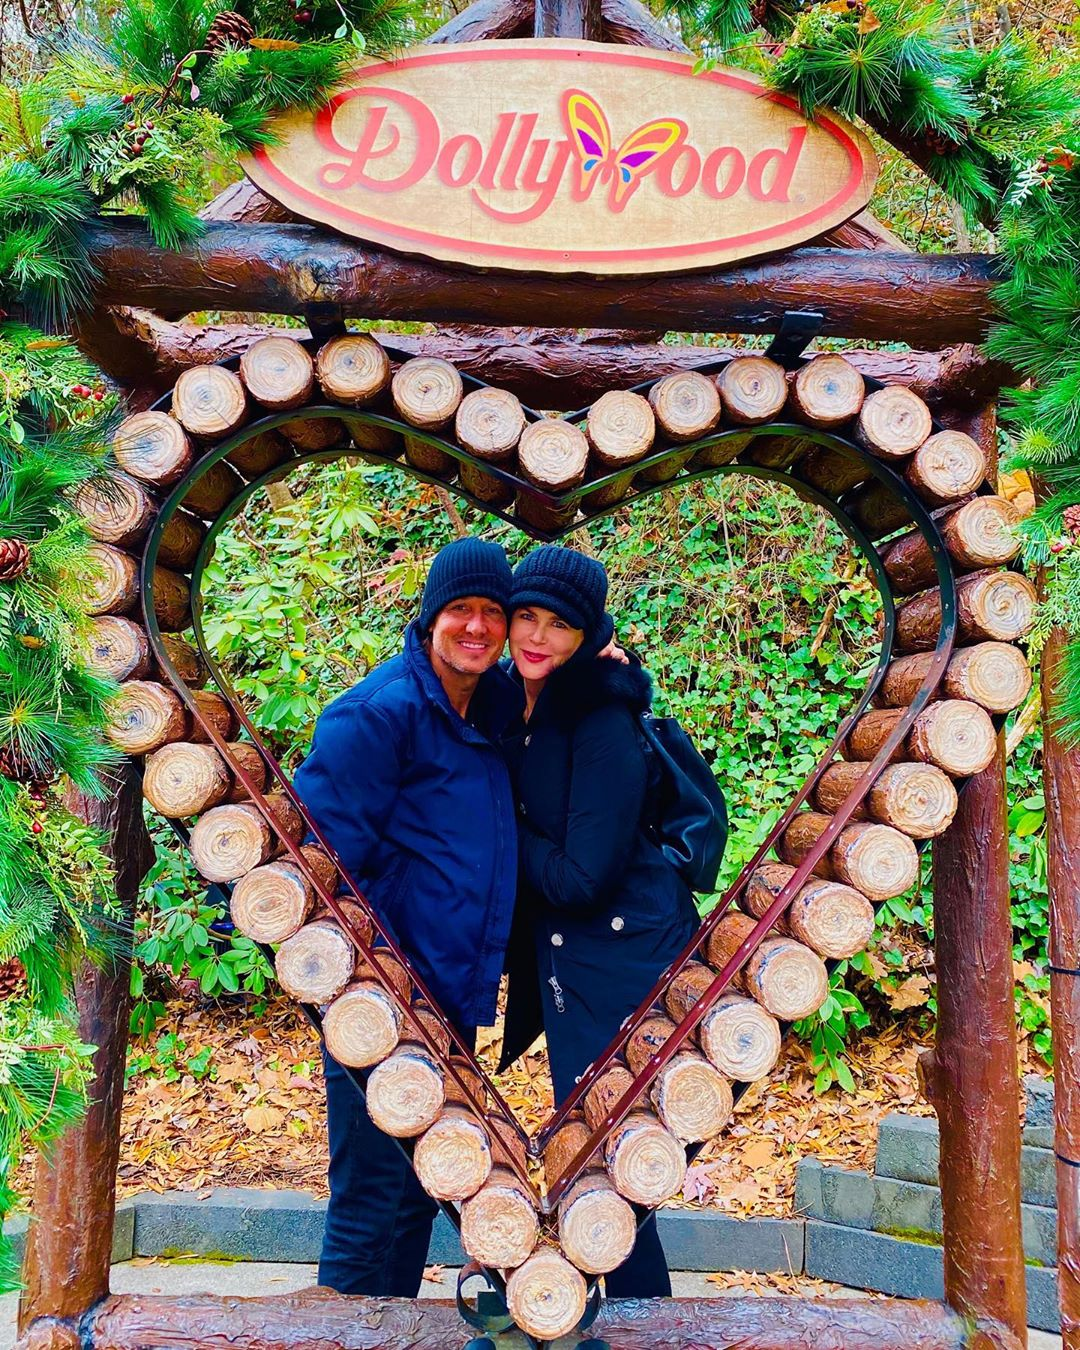 Dollywood Day! Nicole Kidman and Keith Urban Celebrated Valentine's with a Trip to Pigeon Forge